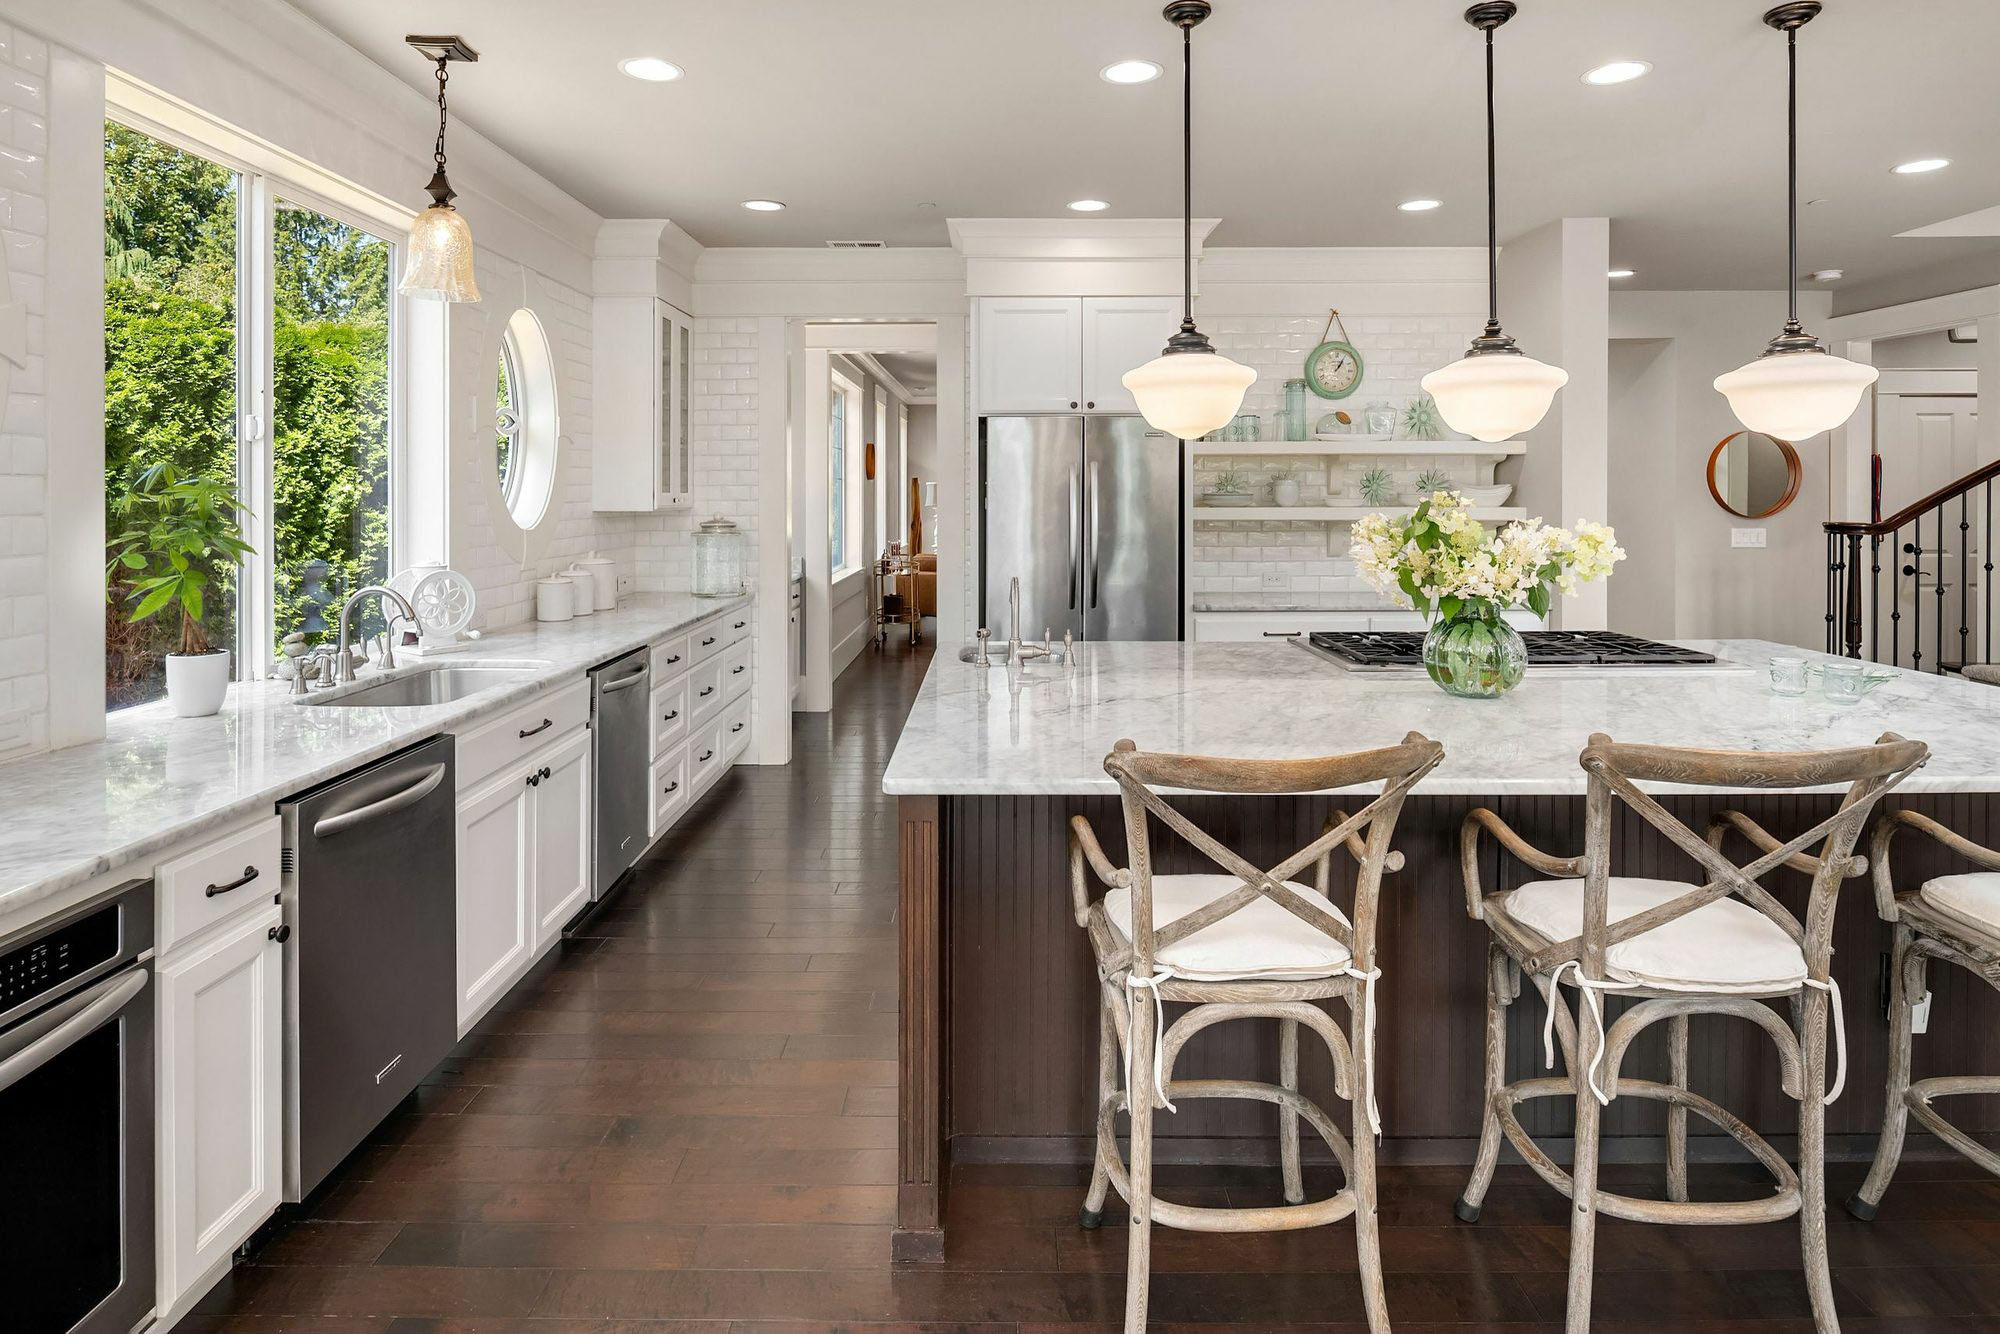 Beautiful luxury kitchen with a great triangle design.